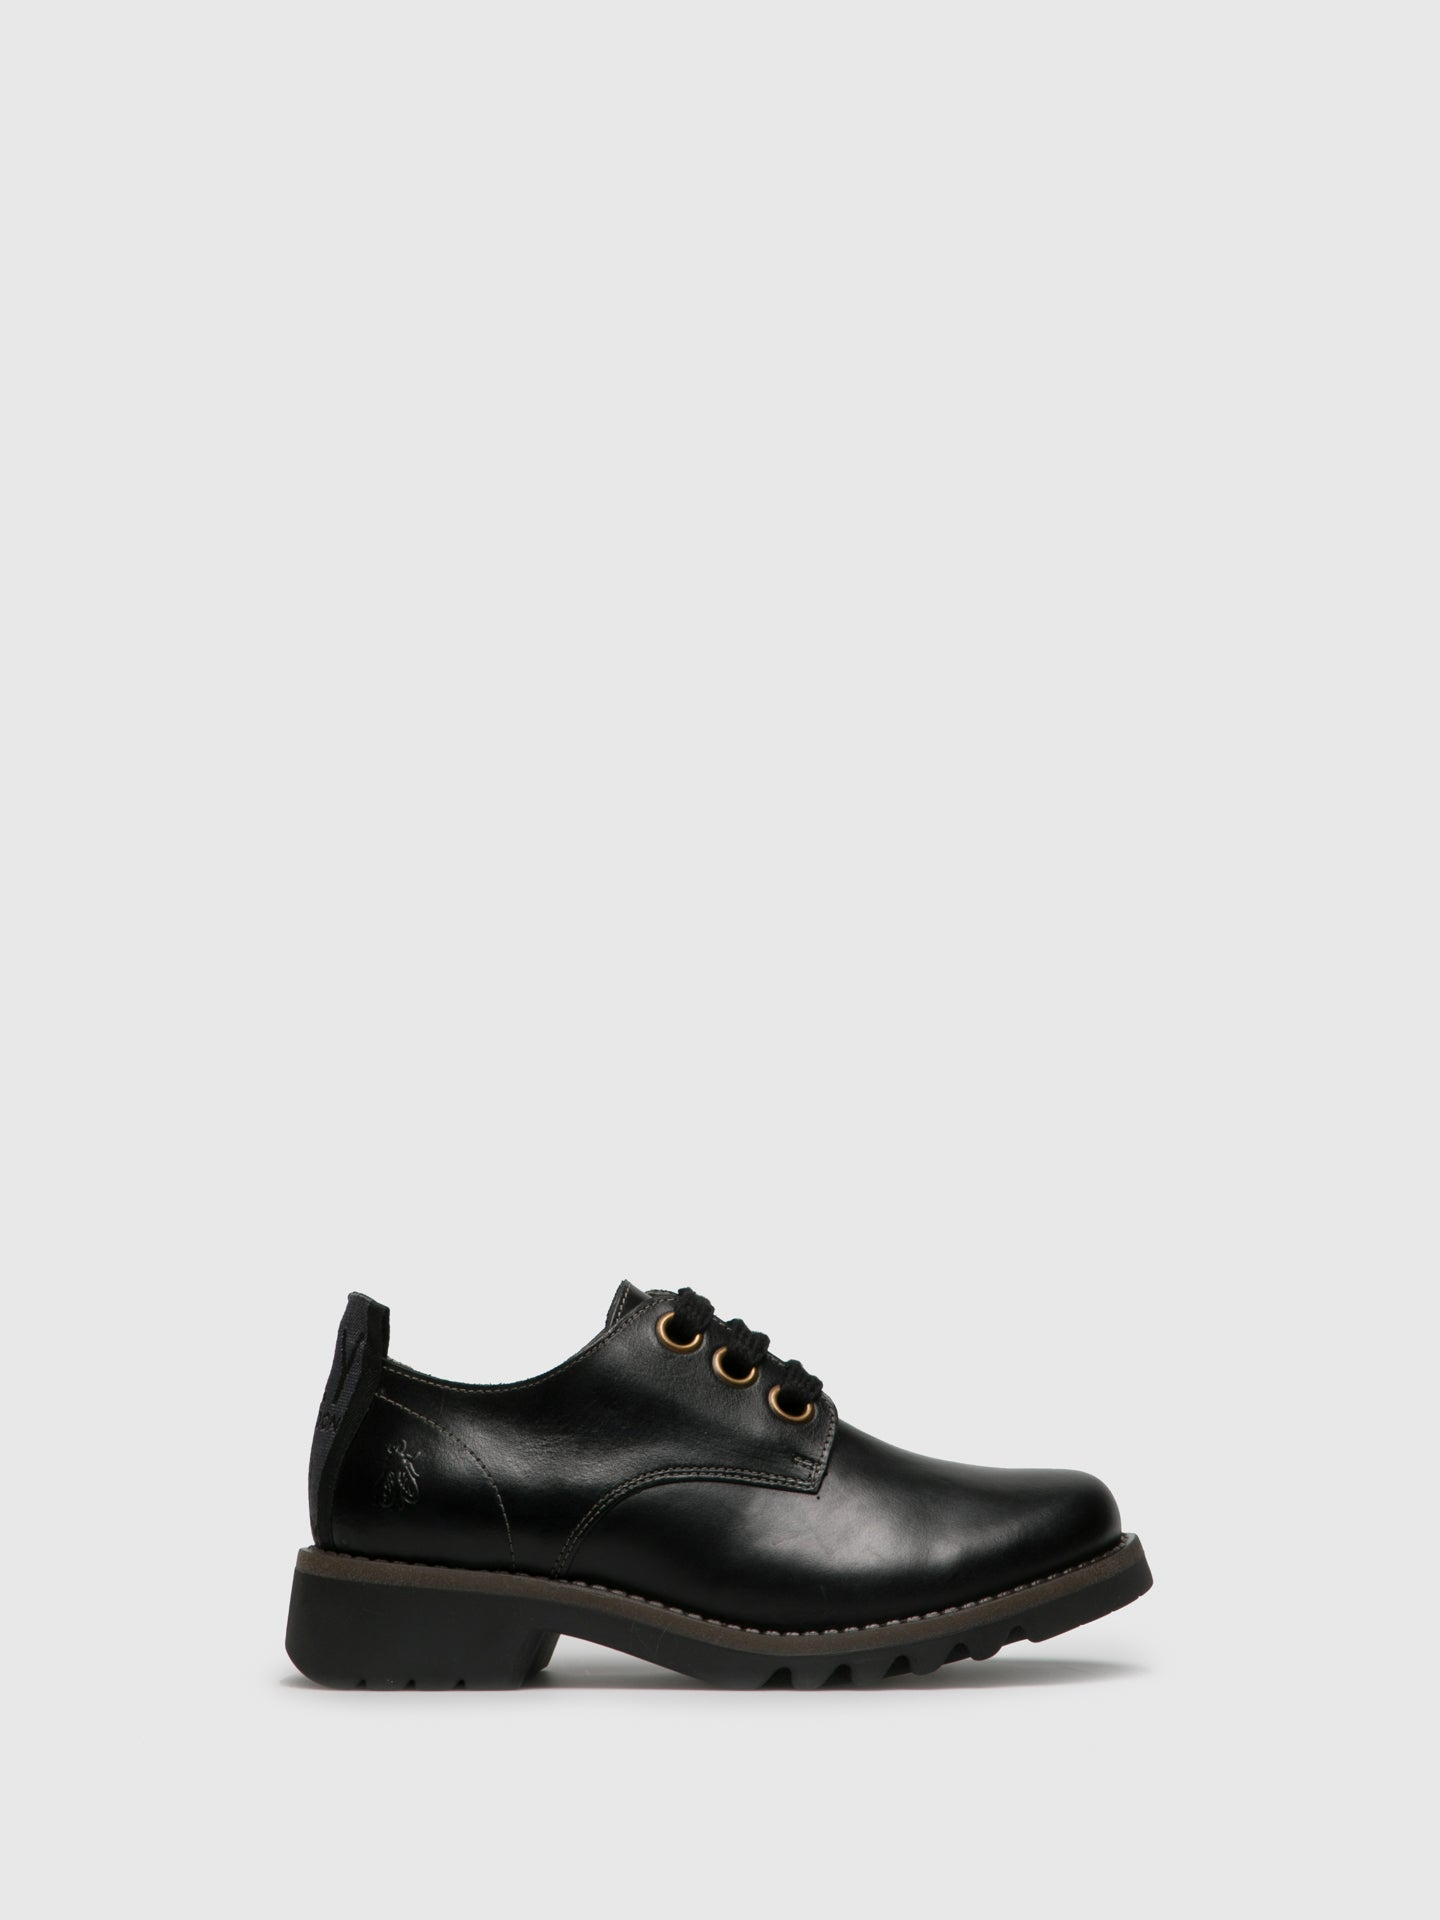 Fly London Zapatos con Cordones en color Negro Mate